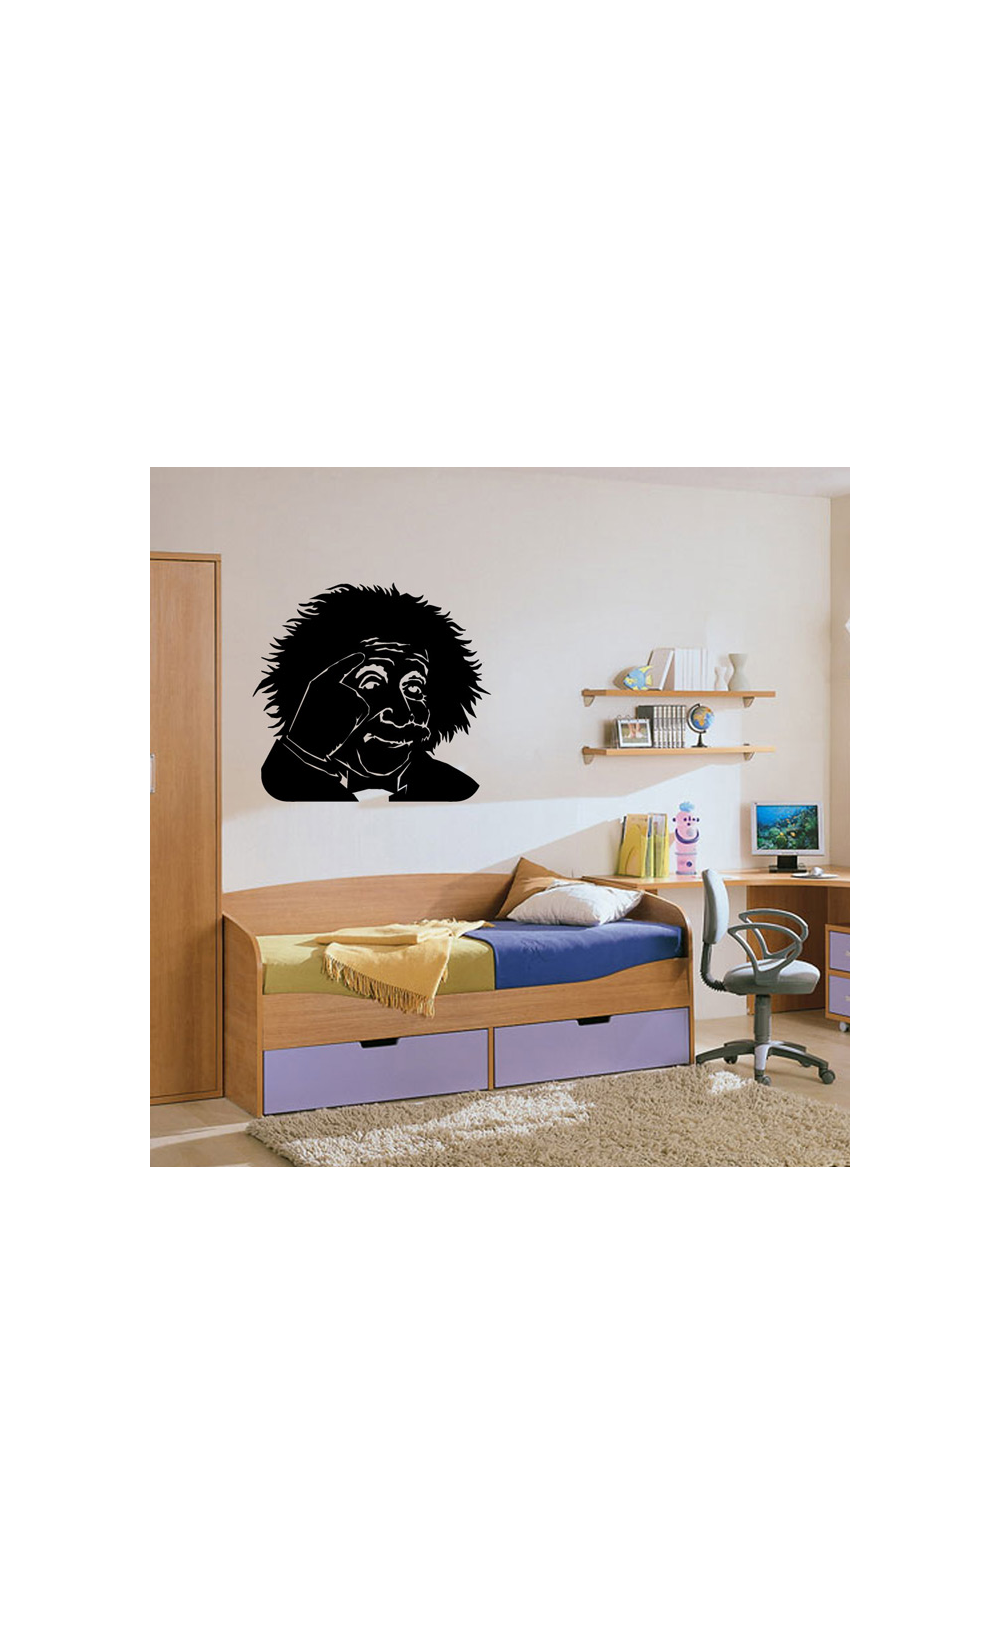 sticker mural pour d corer son int rieur petit prix mod le einstein. Black Bedroom Furniture Sets. Home Design Ideas